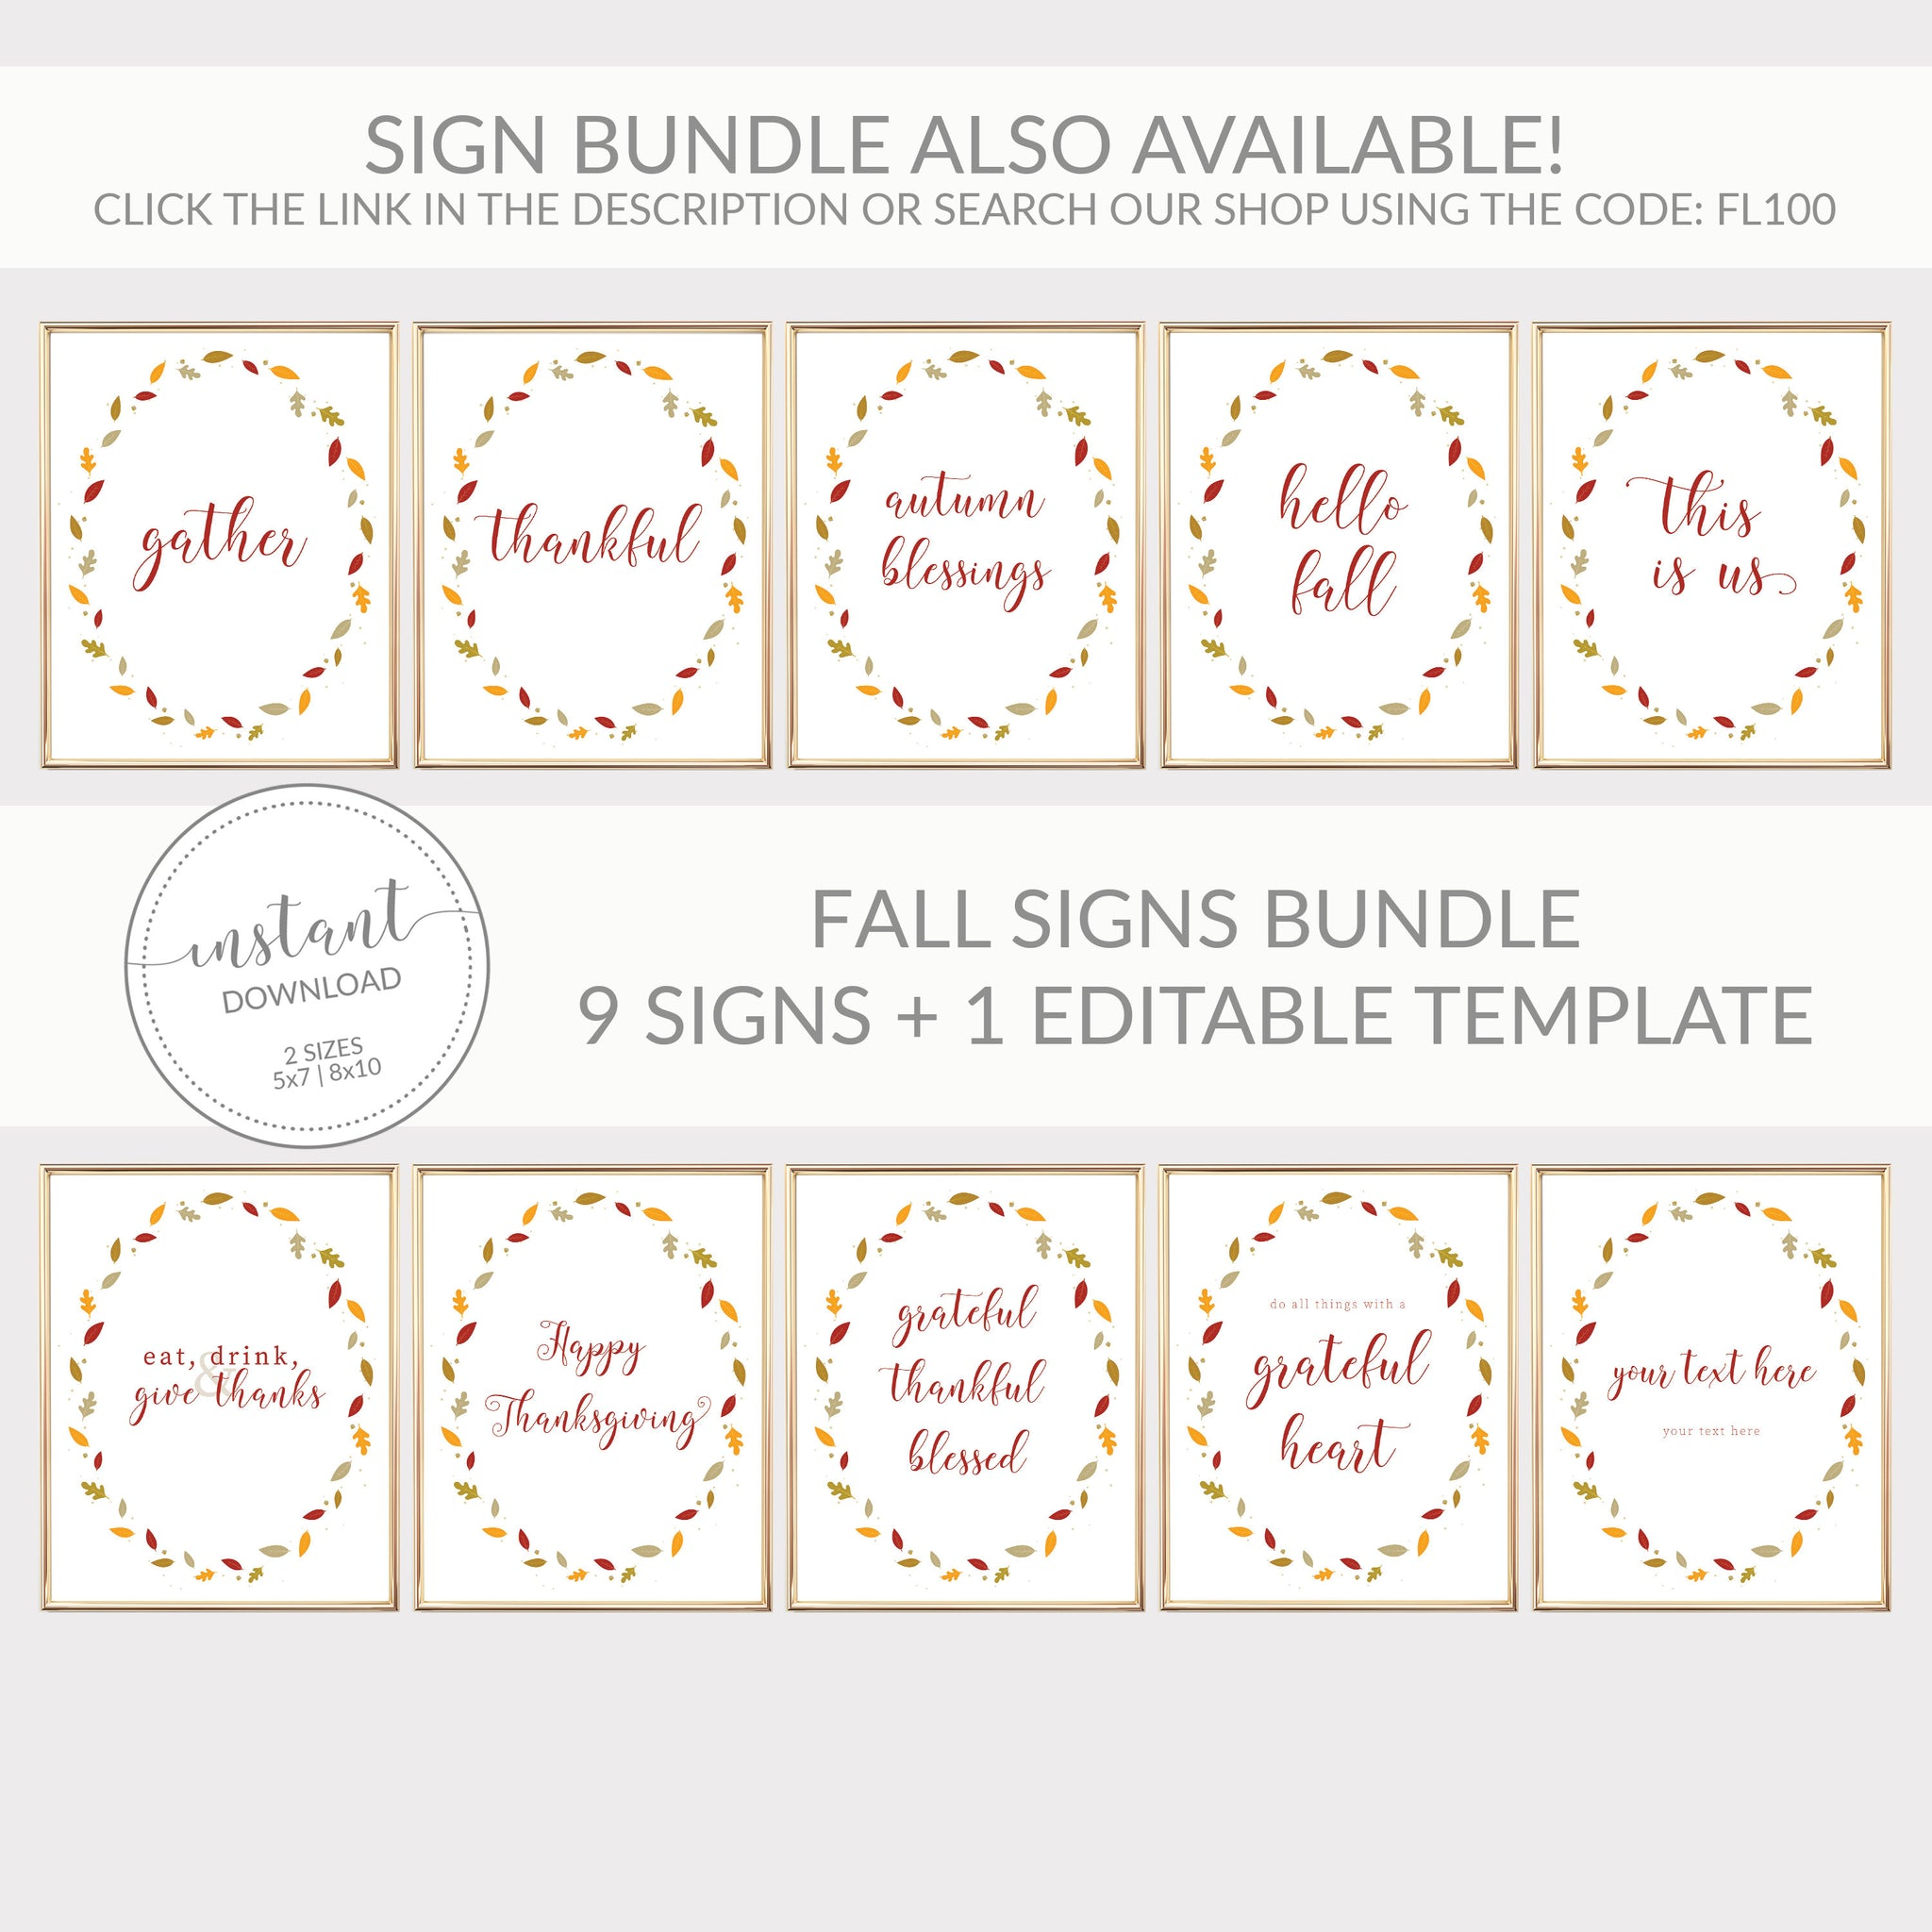 Thanksgiving Sign, Fall Decor Printable, Do All Things With a Grateful Heart Sign, 1 Thessalonians 5 18 Sign, INSTANT DOWNLOAD - FL100